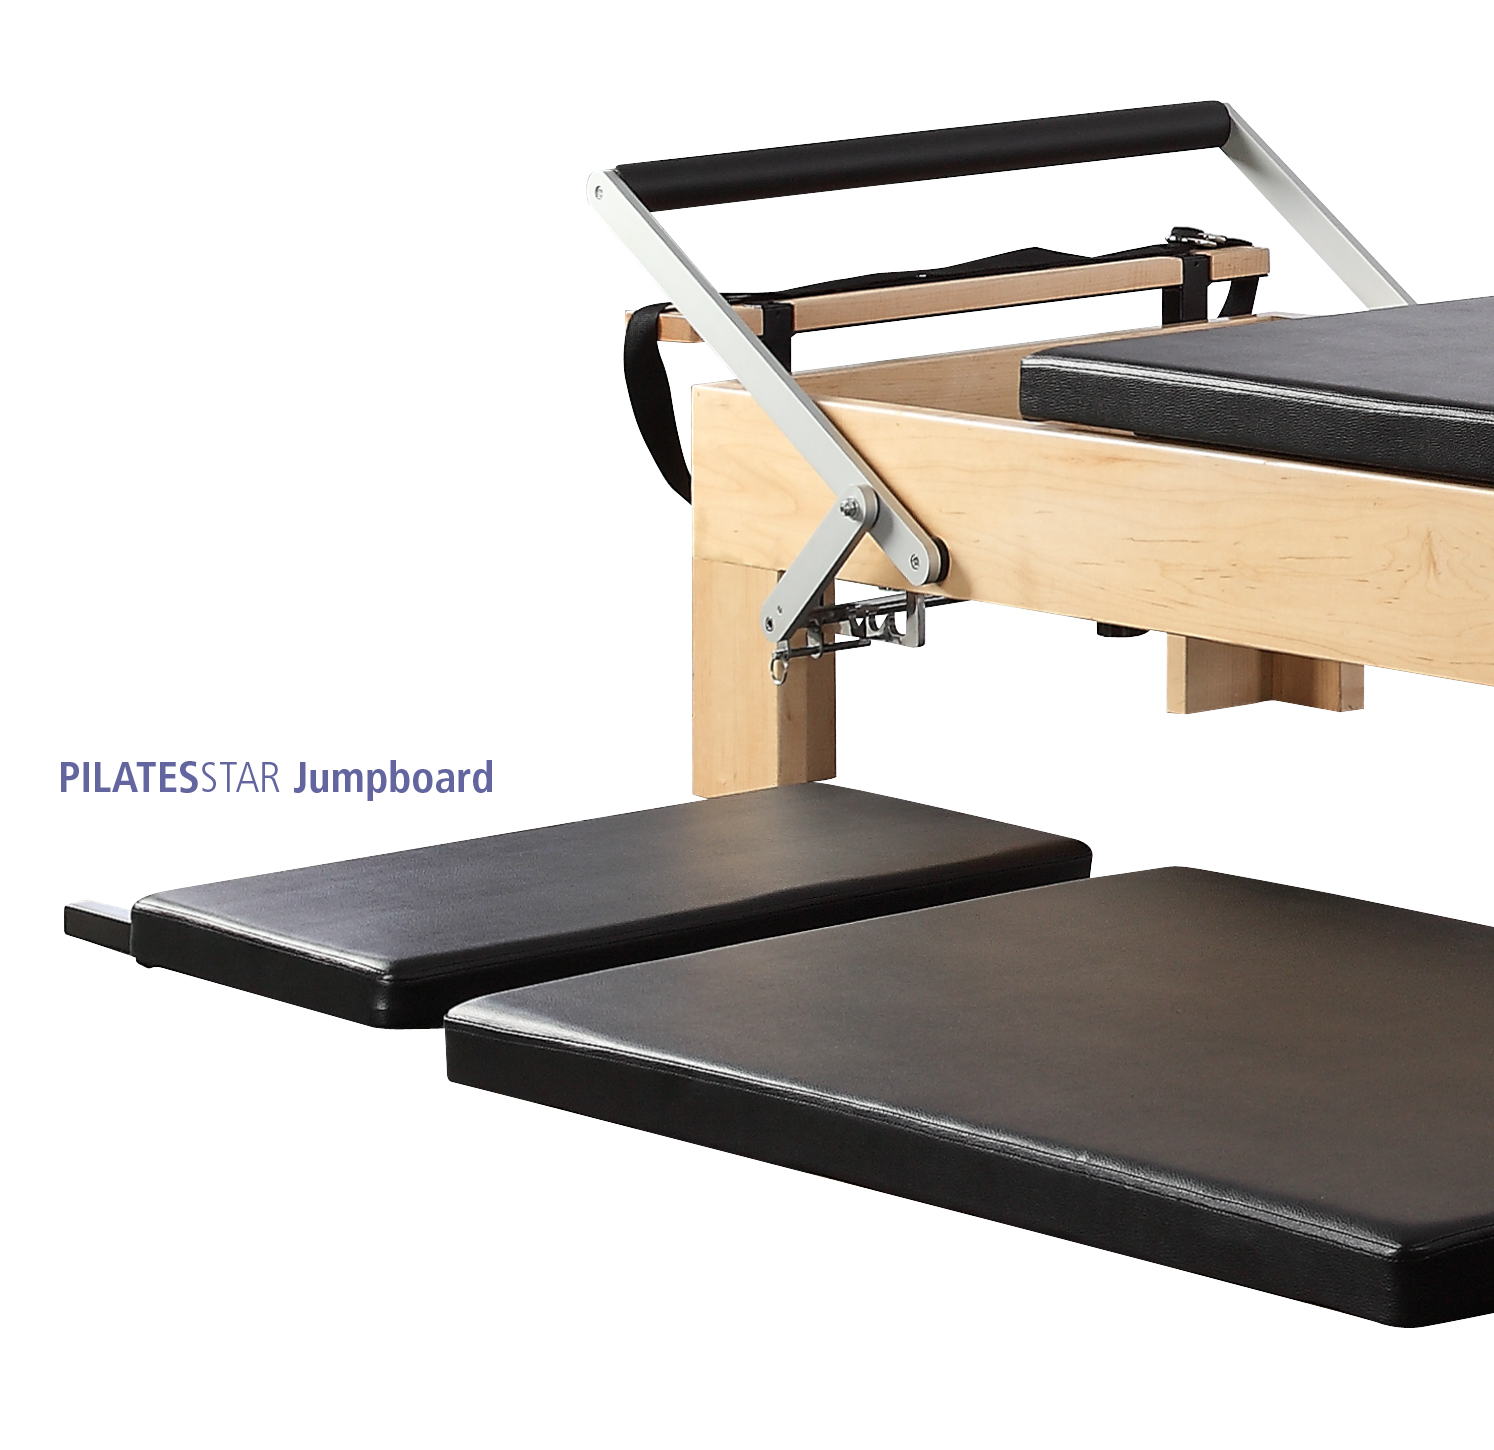 Affordable Pilates Equipment: Expansion Set For The Maplewood PILATES STAR